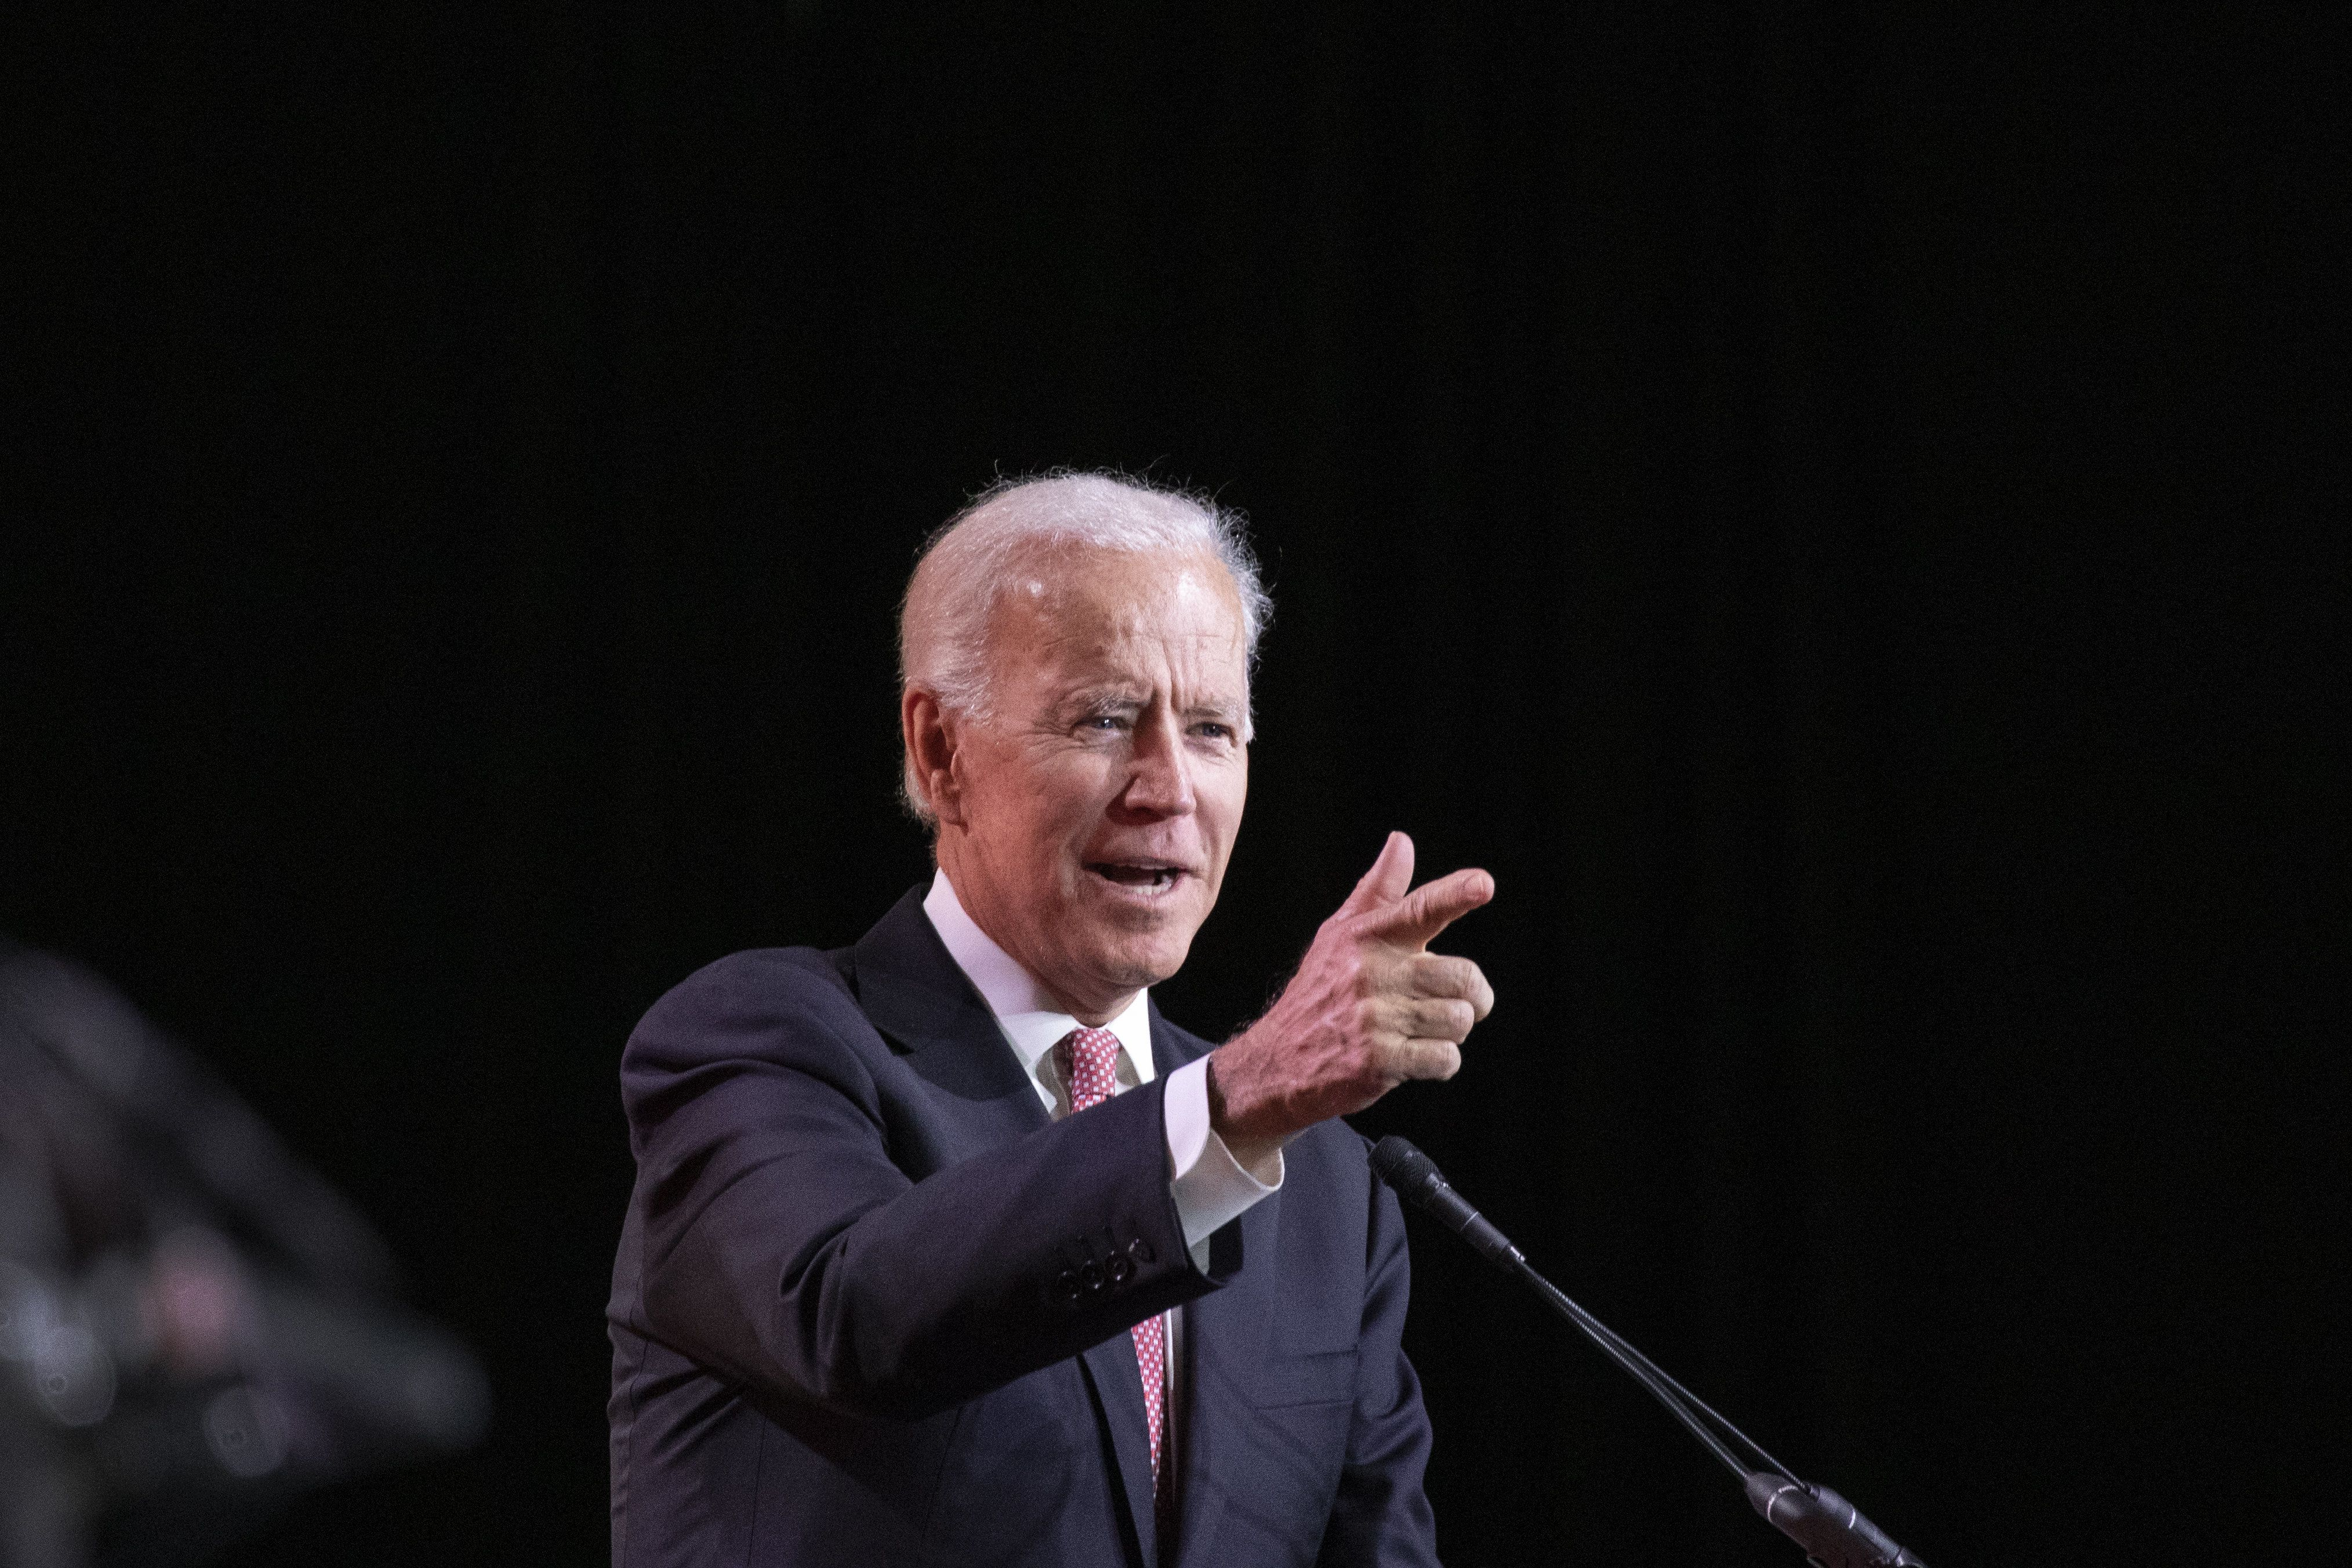 """Joe Biden has said that his 40 years in the U.S. Senate make him the """"most qualified"""" candidate for the presidenc"""